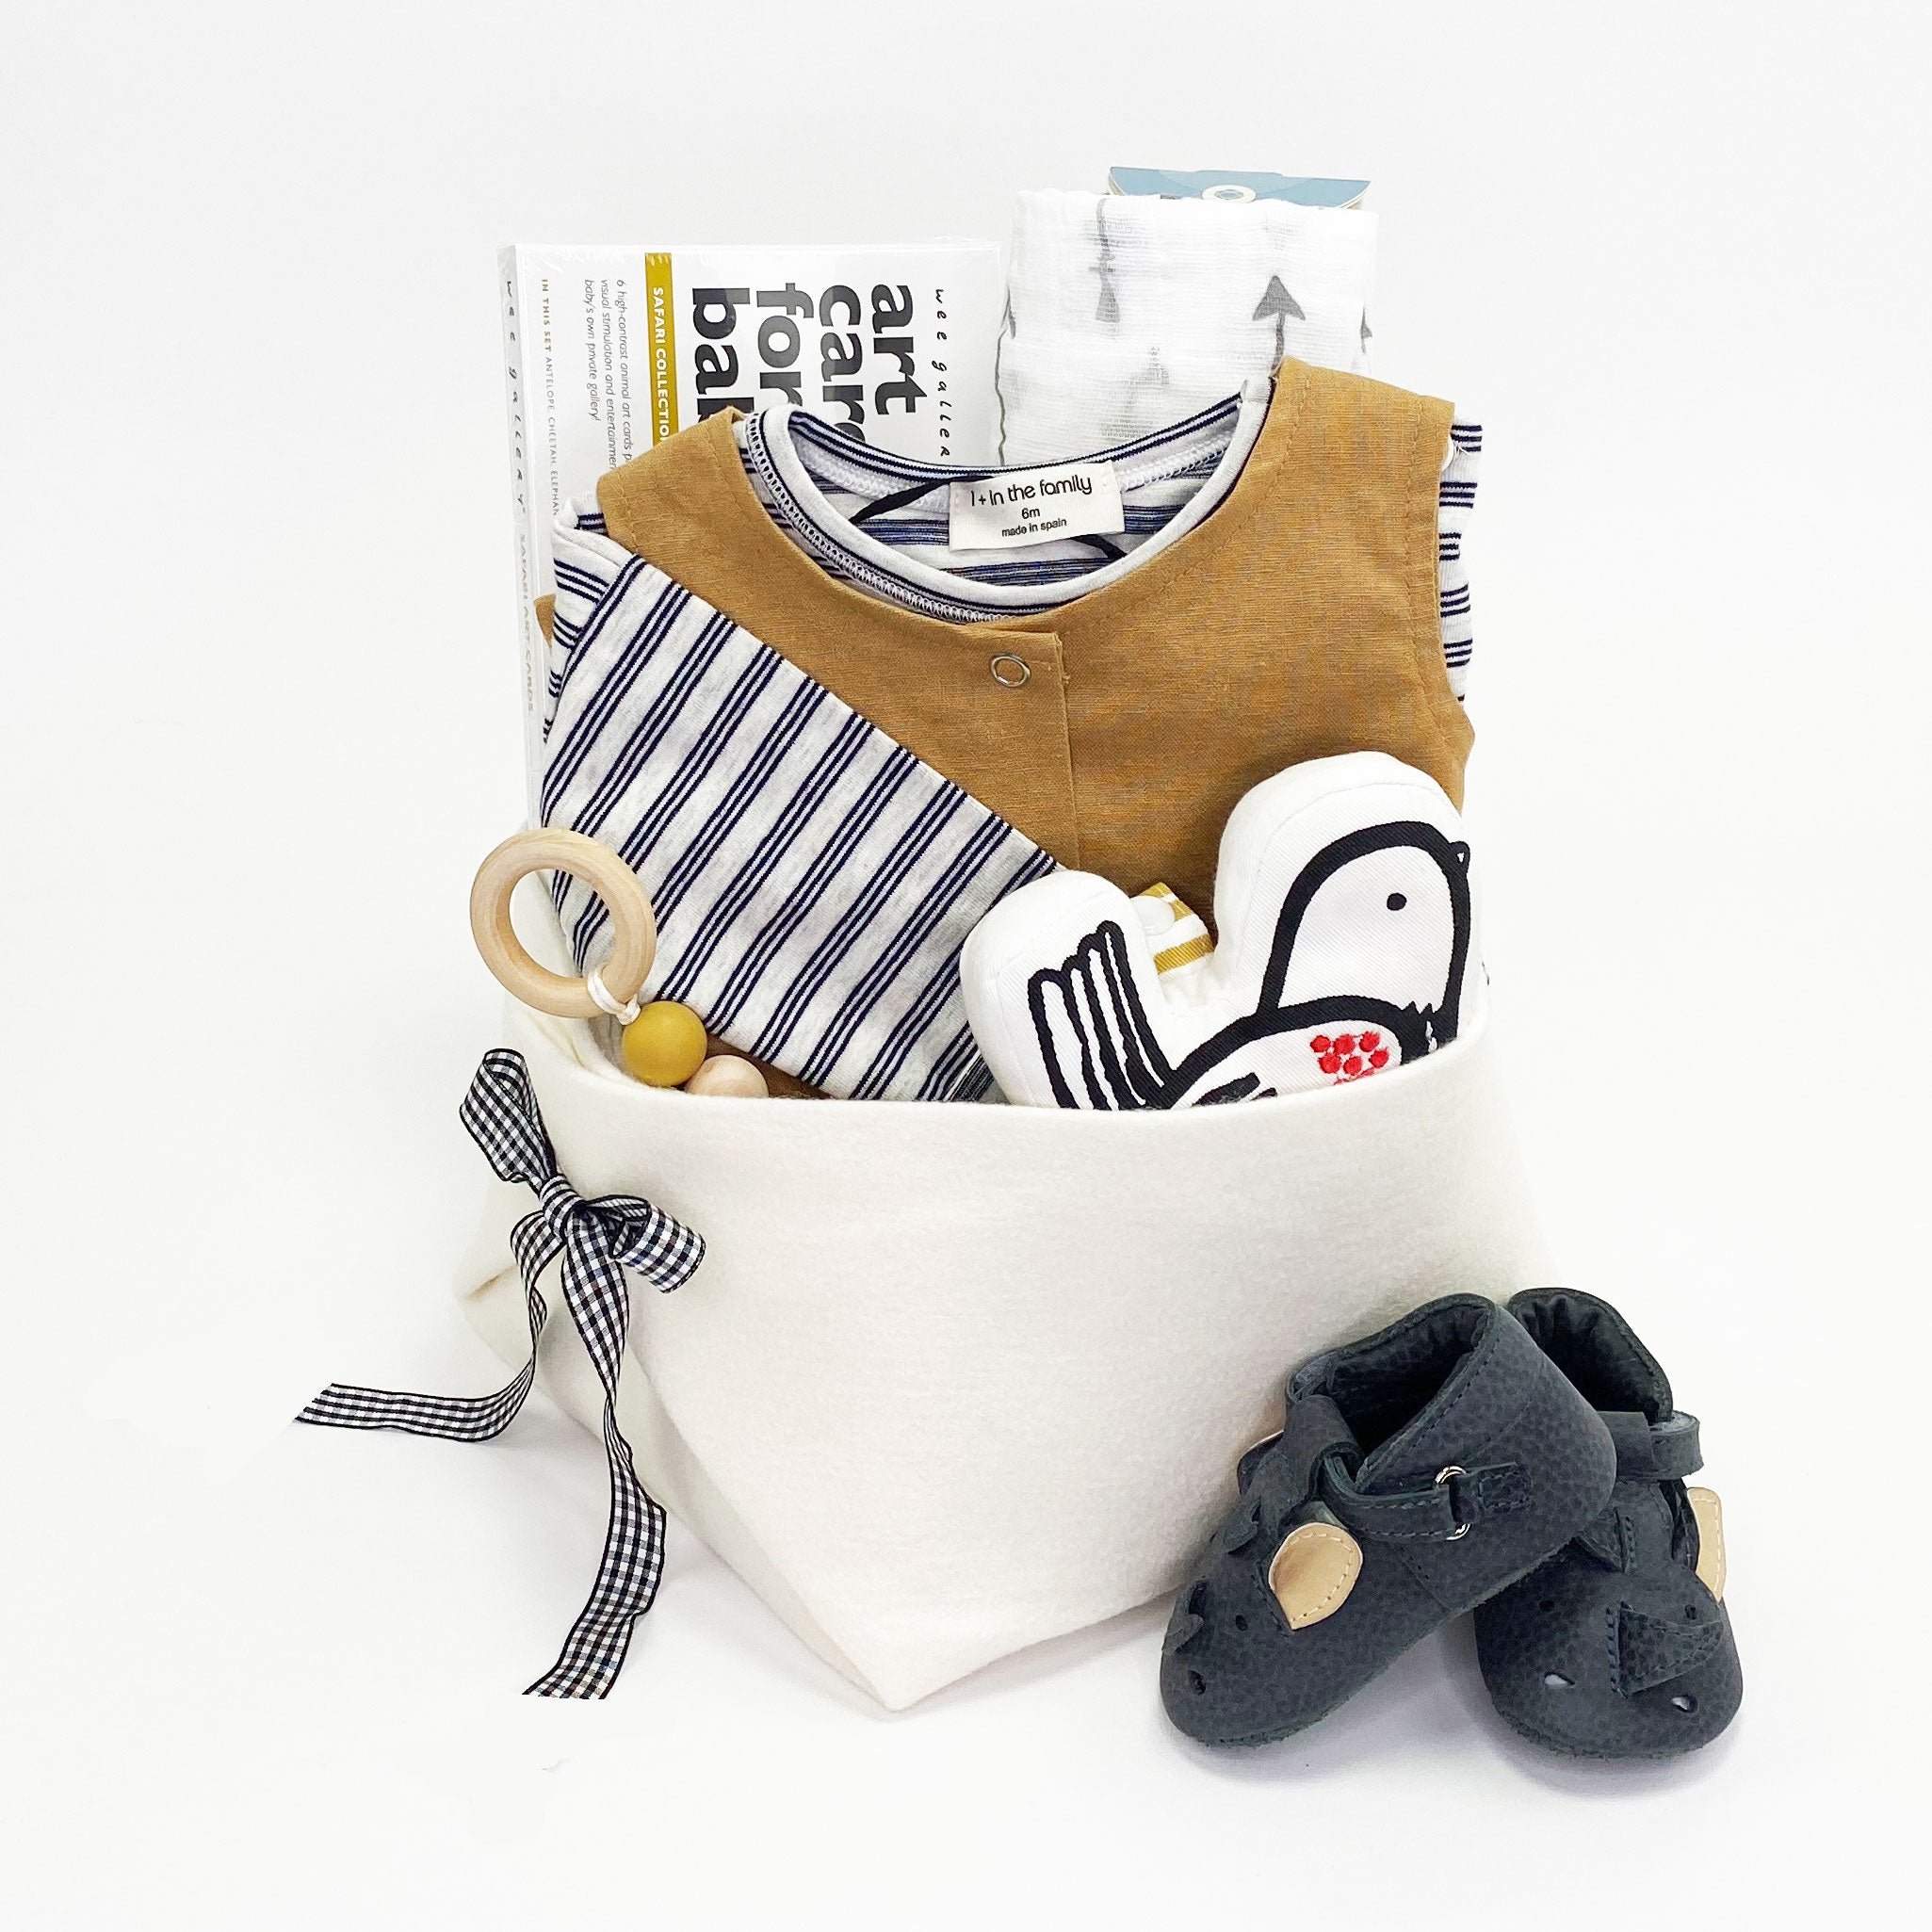 Trendy Baby Gift Basket at Bonjour Baby Baskets, perfect Baby Shower Gift Idea